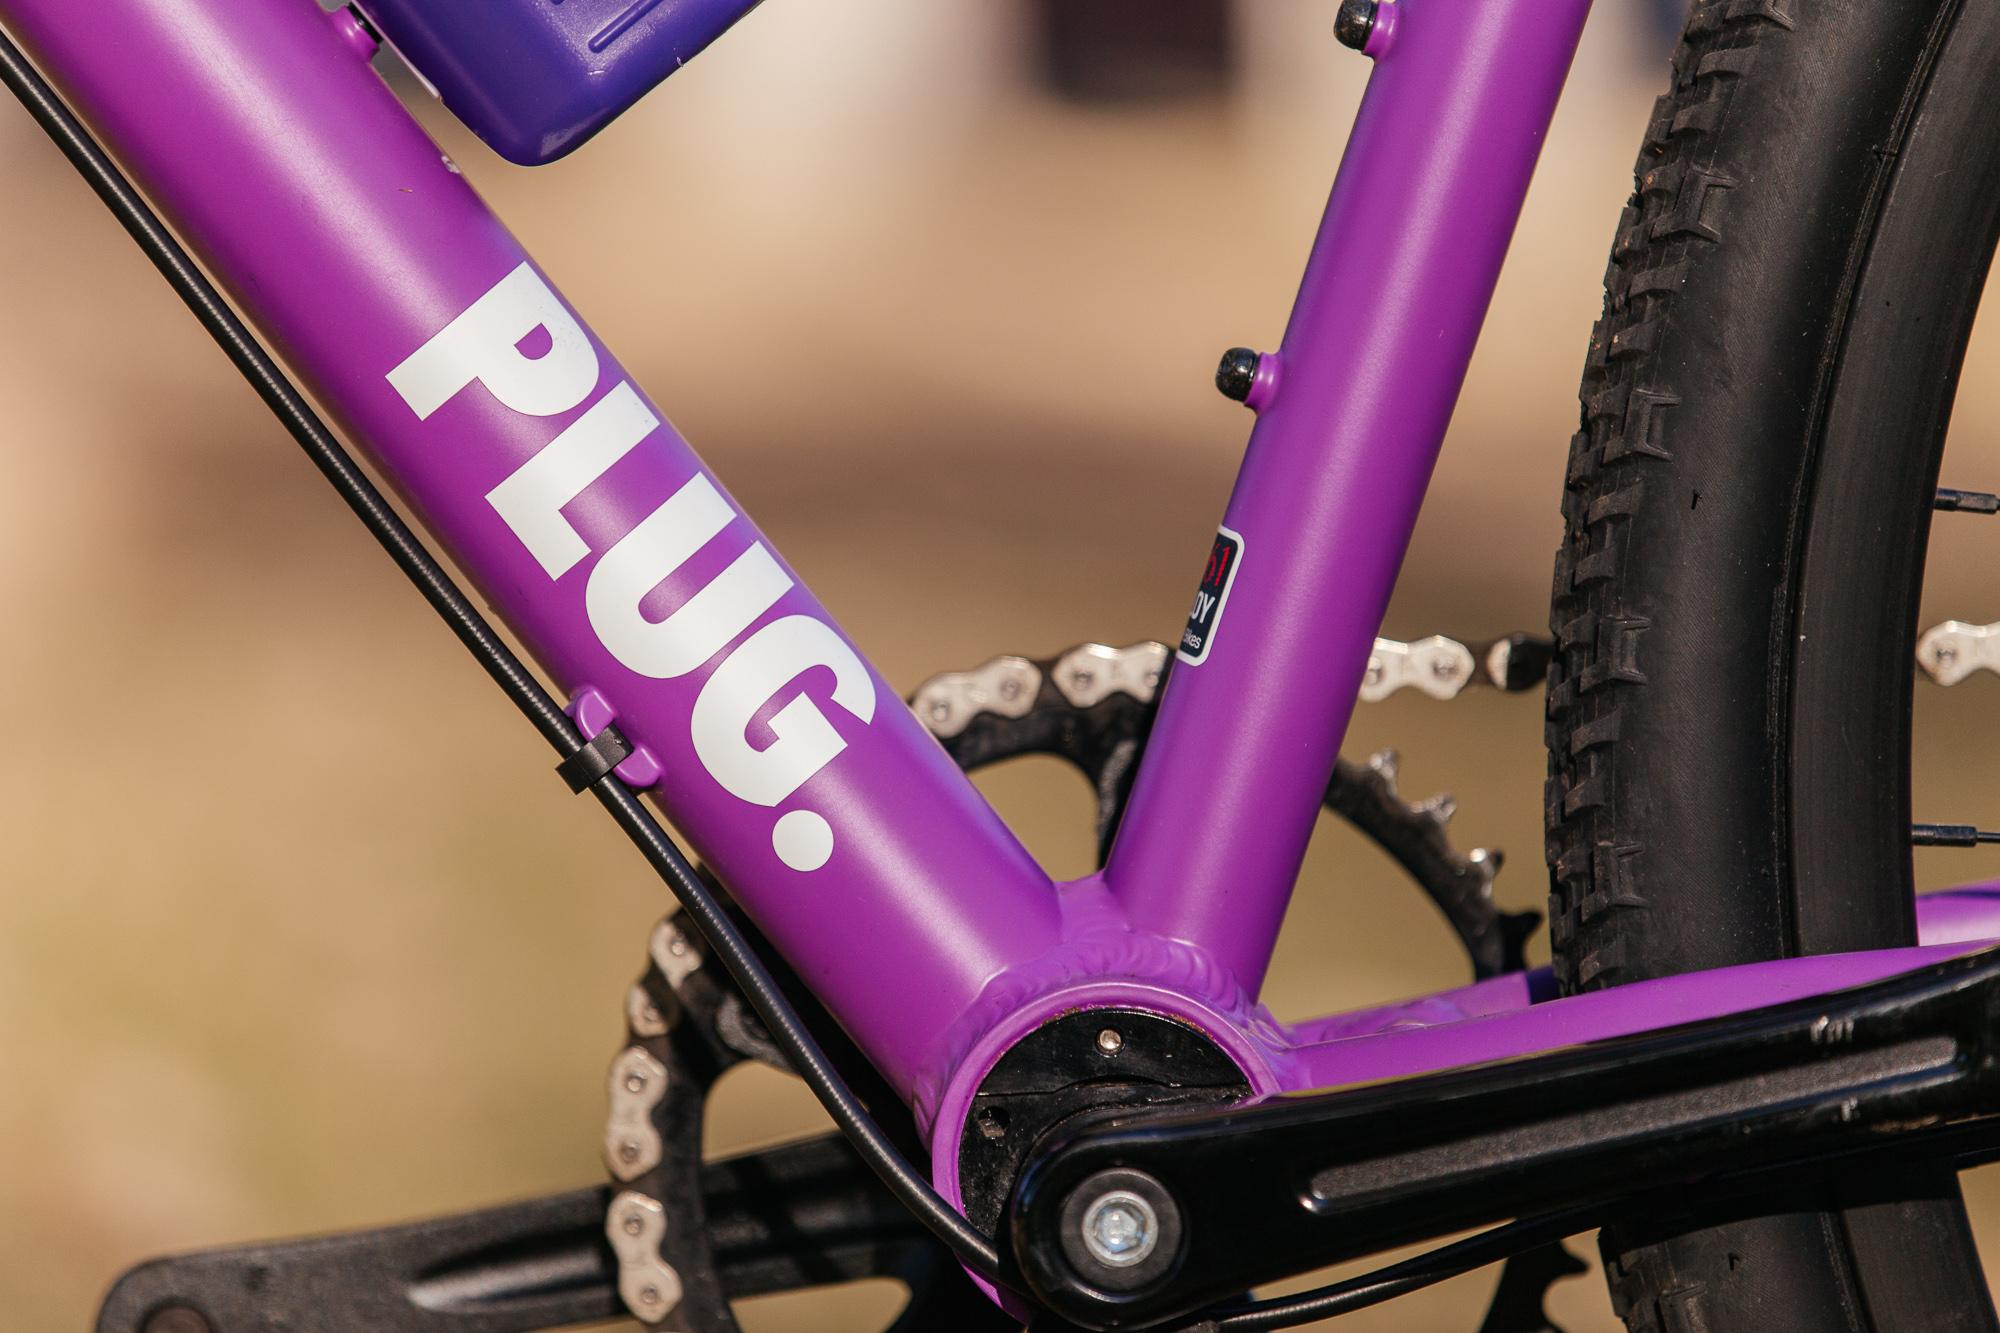 The Grinduro Edition Charge Plug 'Cross Bike